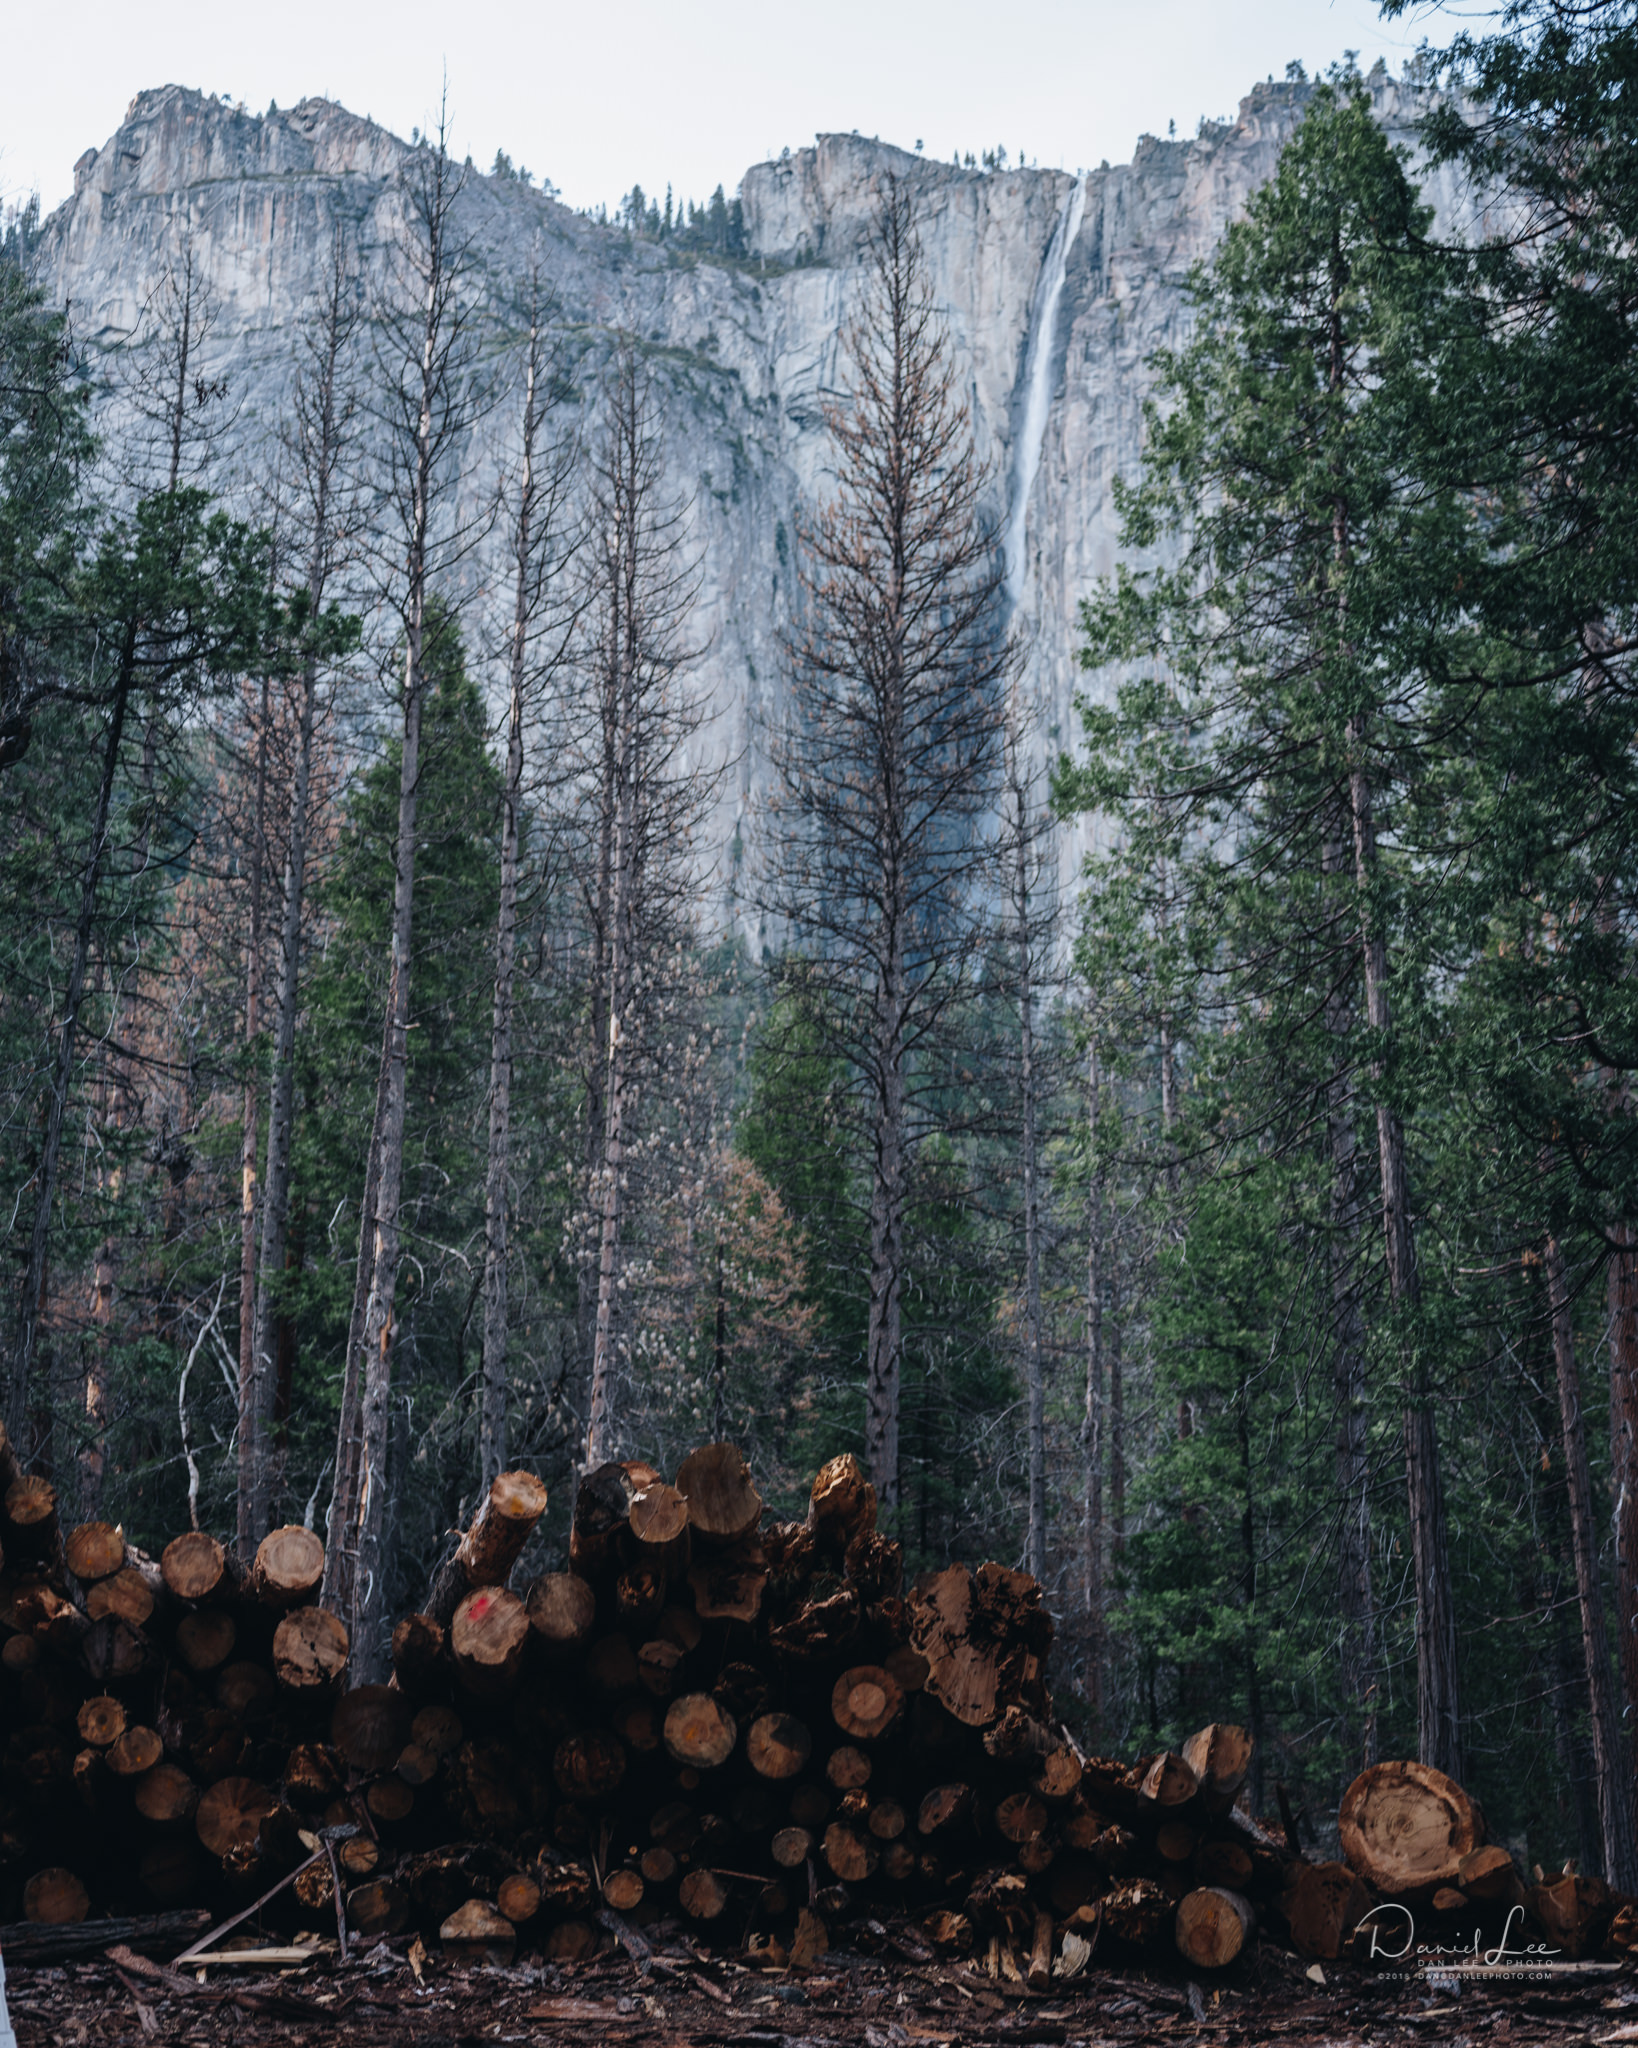 Controlled fires are a part of regular upkeep for Yosemite National Park. Here are some downed trees stacked by Big Oak Flat Road. Photo by Daniel Lee.